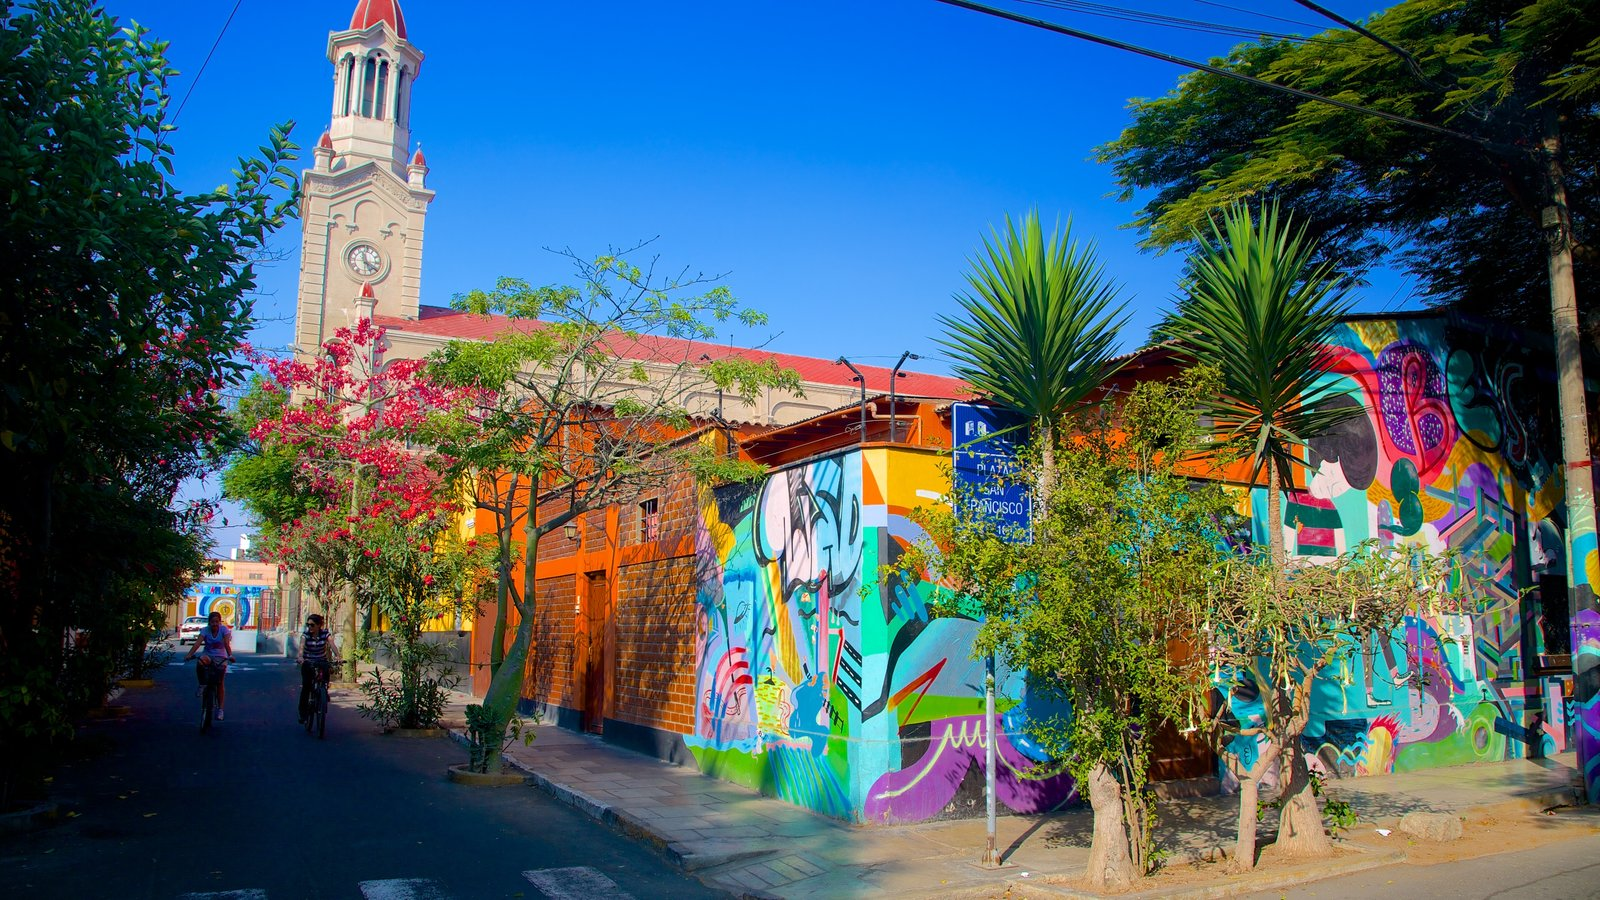 Barranco showing outdoor art and a city